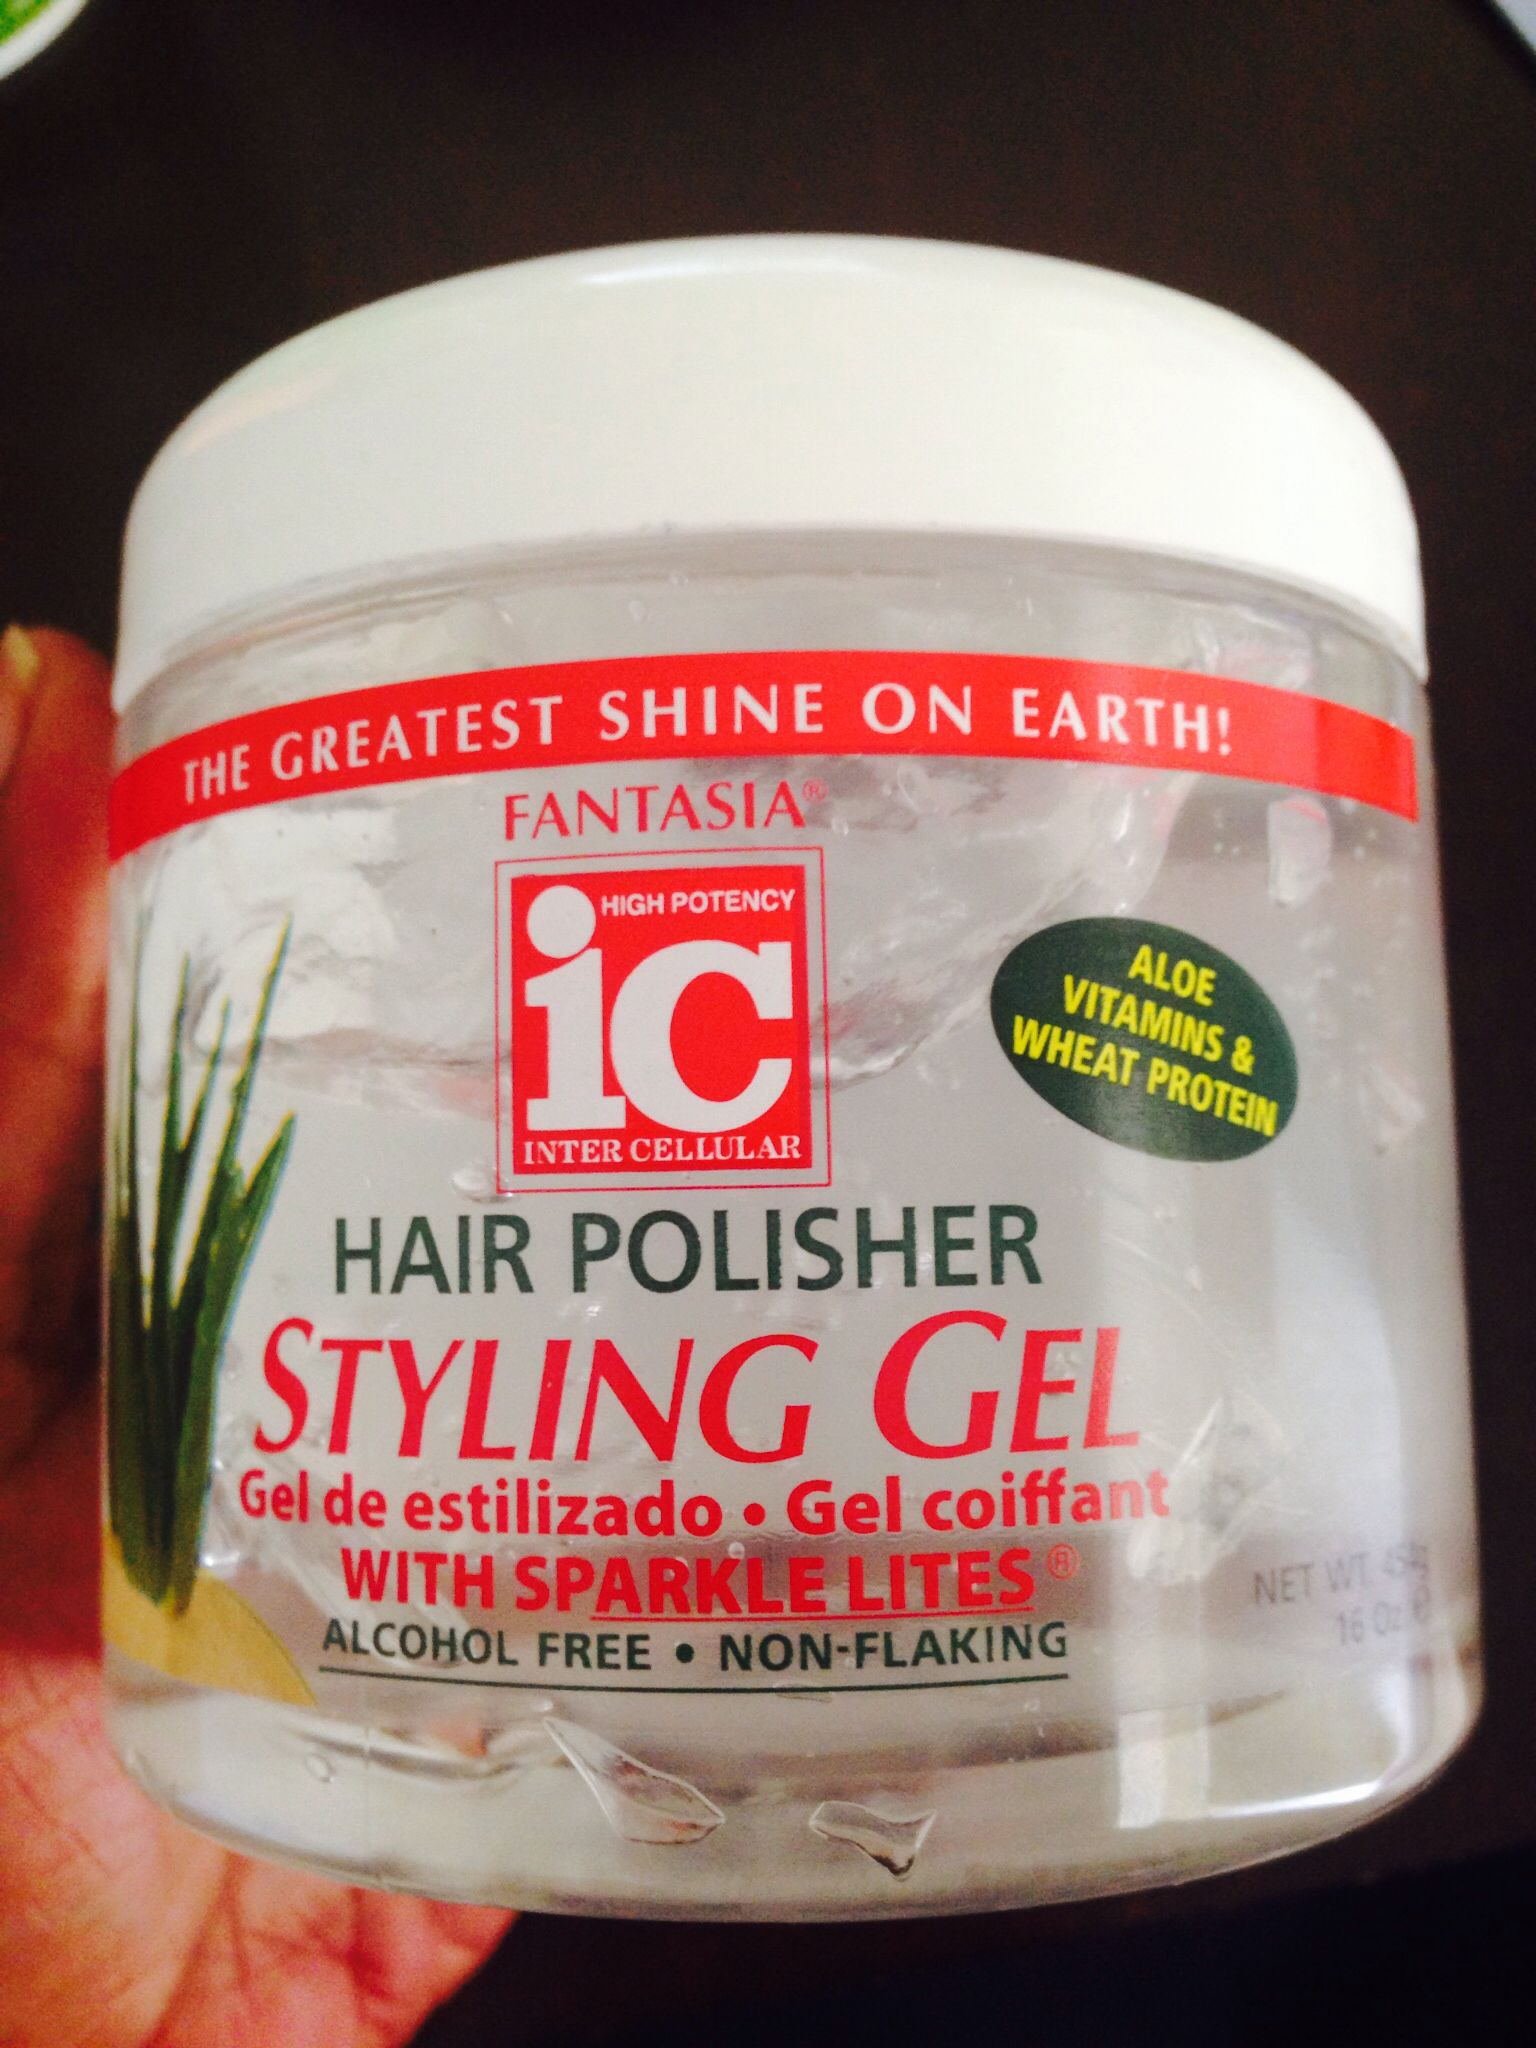 Hair Gel That S Non Flaking And Alcohol Free And Gives Body Shine And A Soft Hold I This Product Not To Mention Natural Hair Styles Styling Gel Hair Hacks